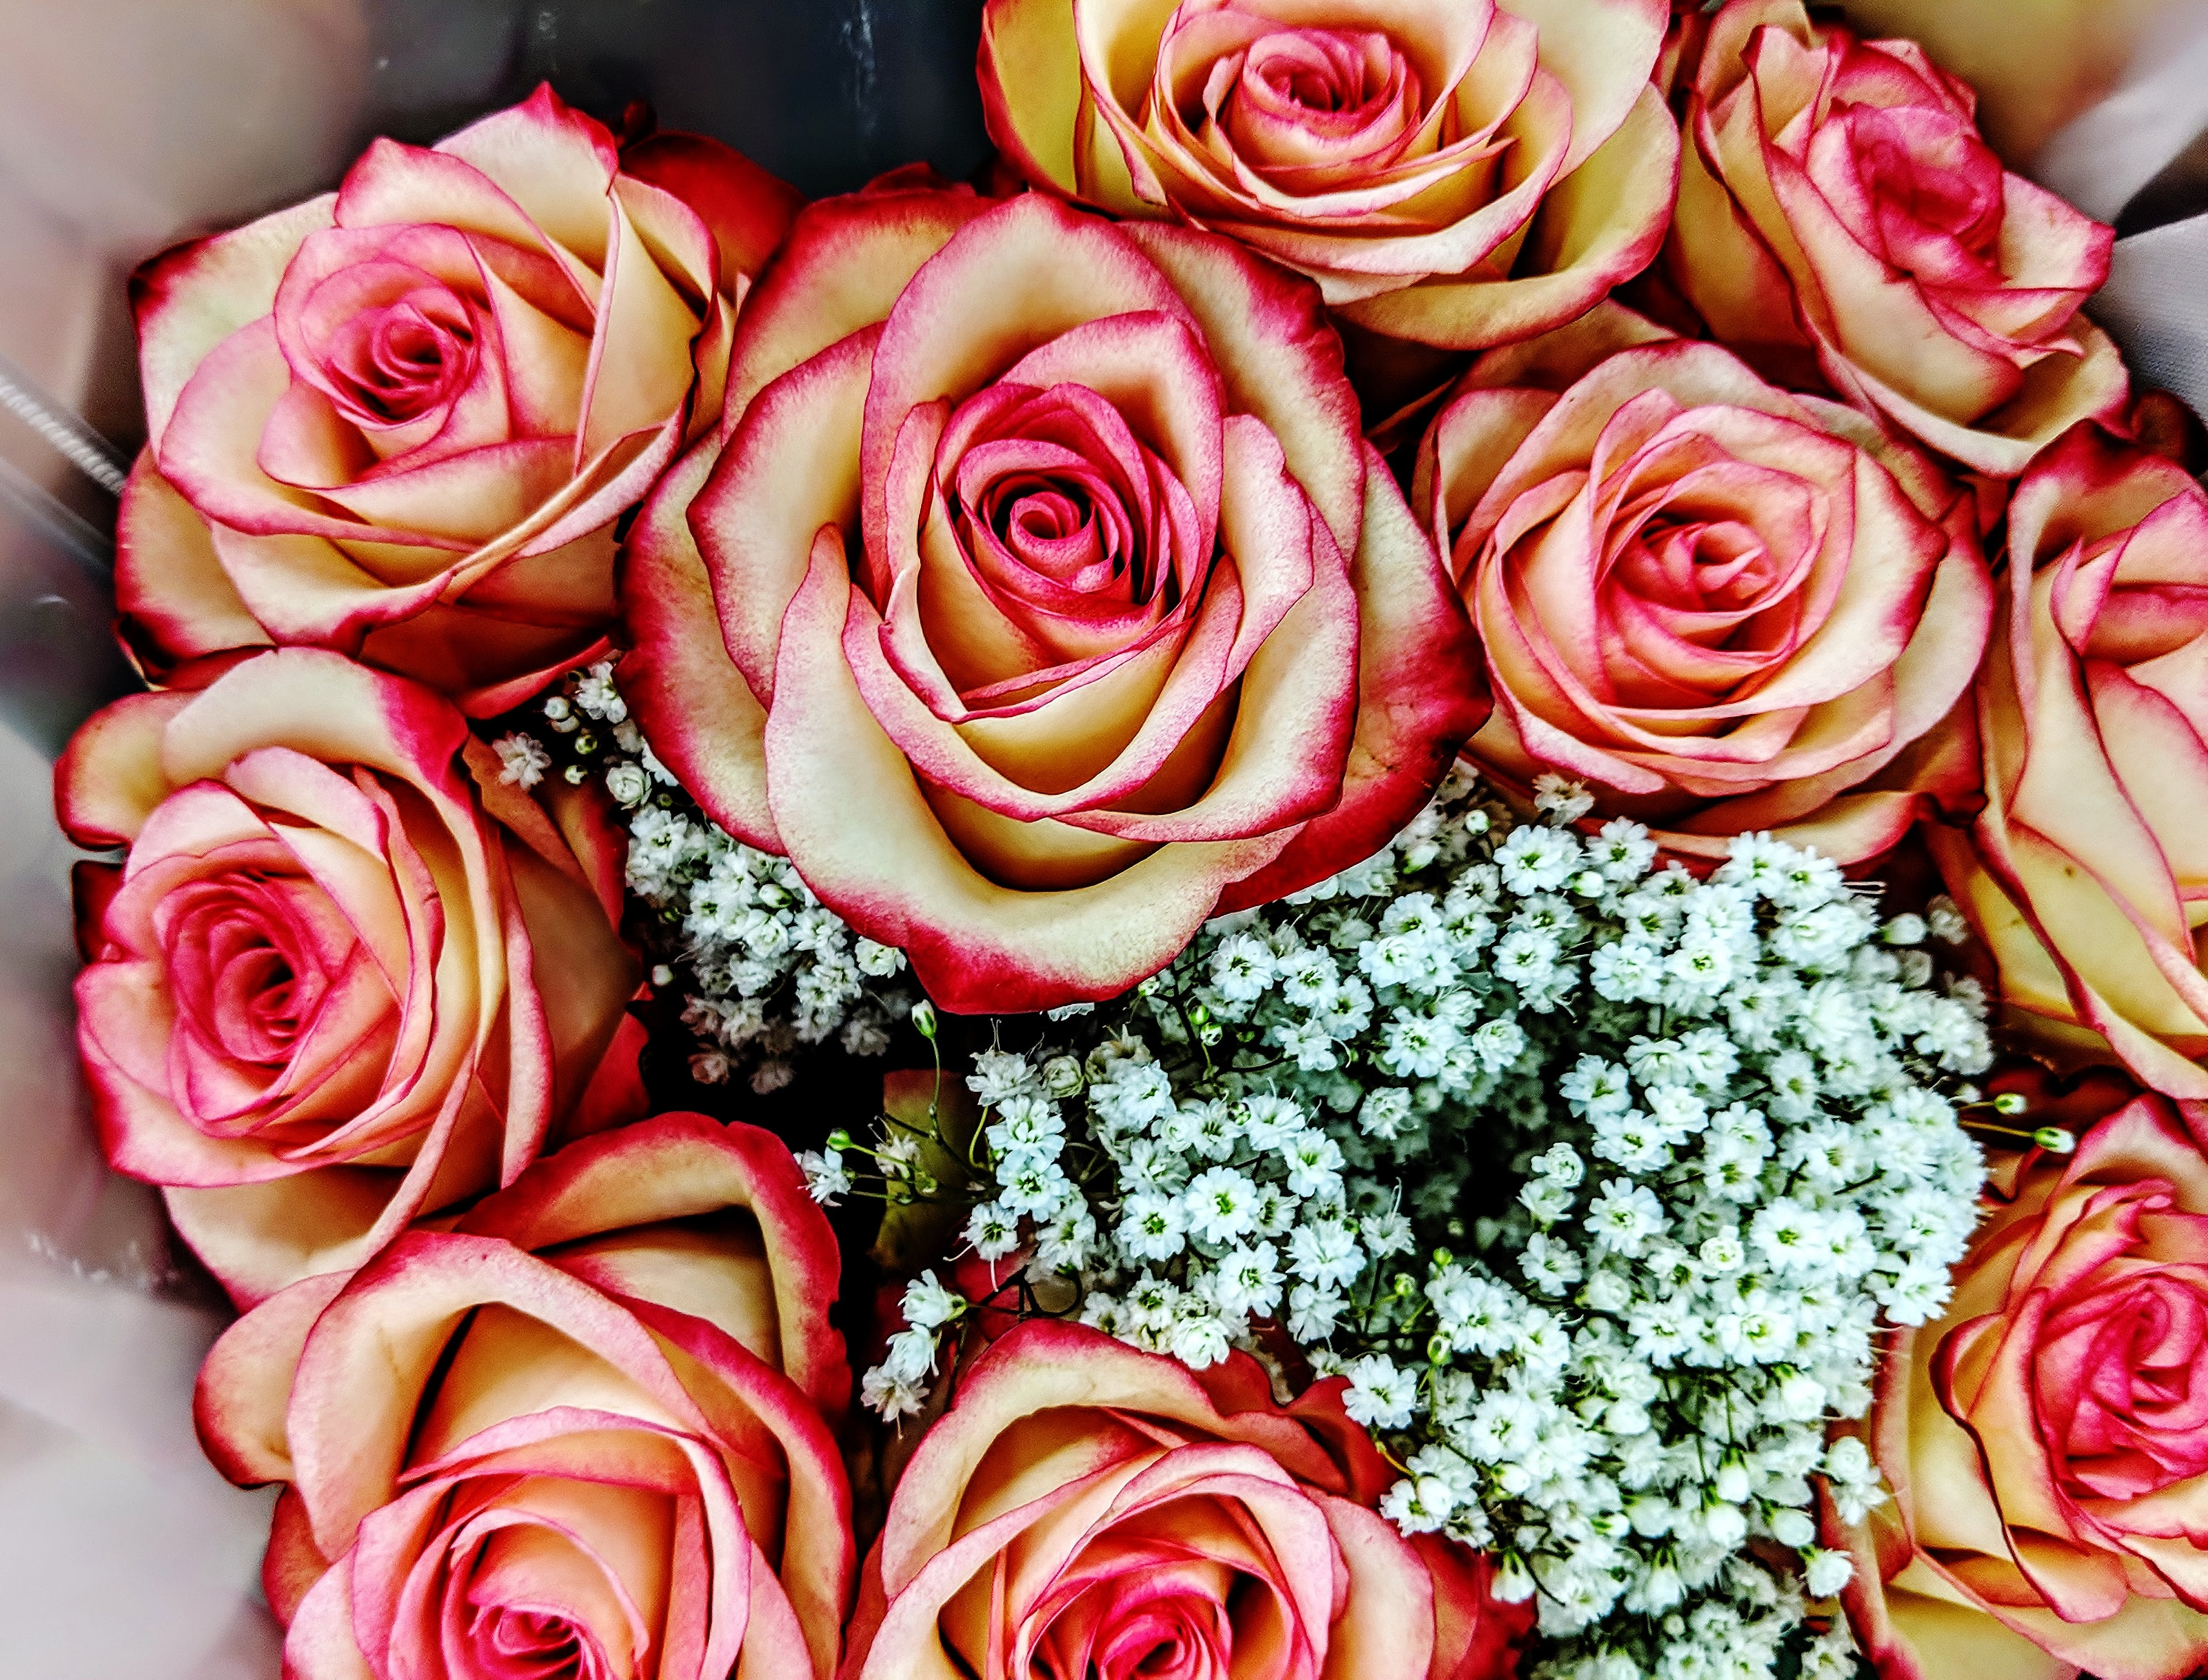 Free stock photo of fire and ice roses, pink roses, red roses, rose bouquet